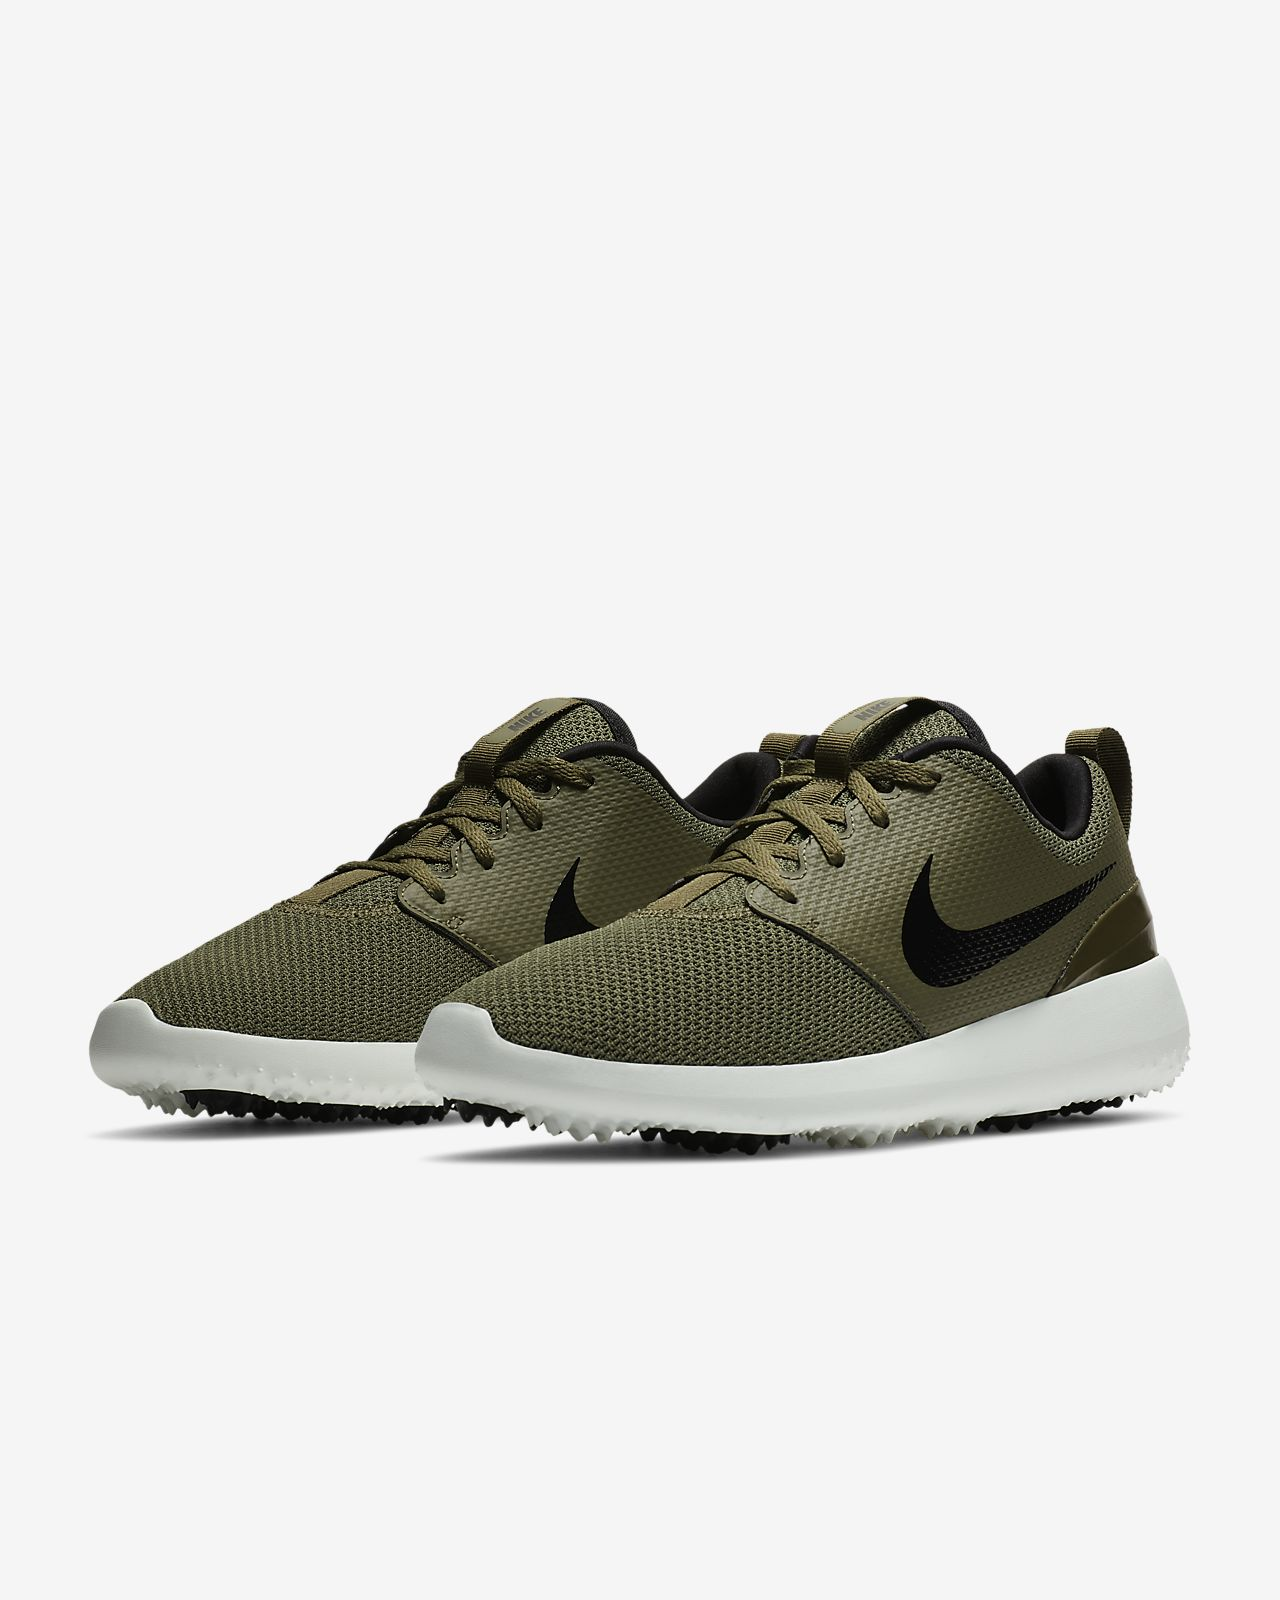 bcc0f4e722bd Nike Roshe G Men s Golf Shoe. Nike.com IE